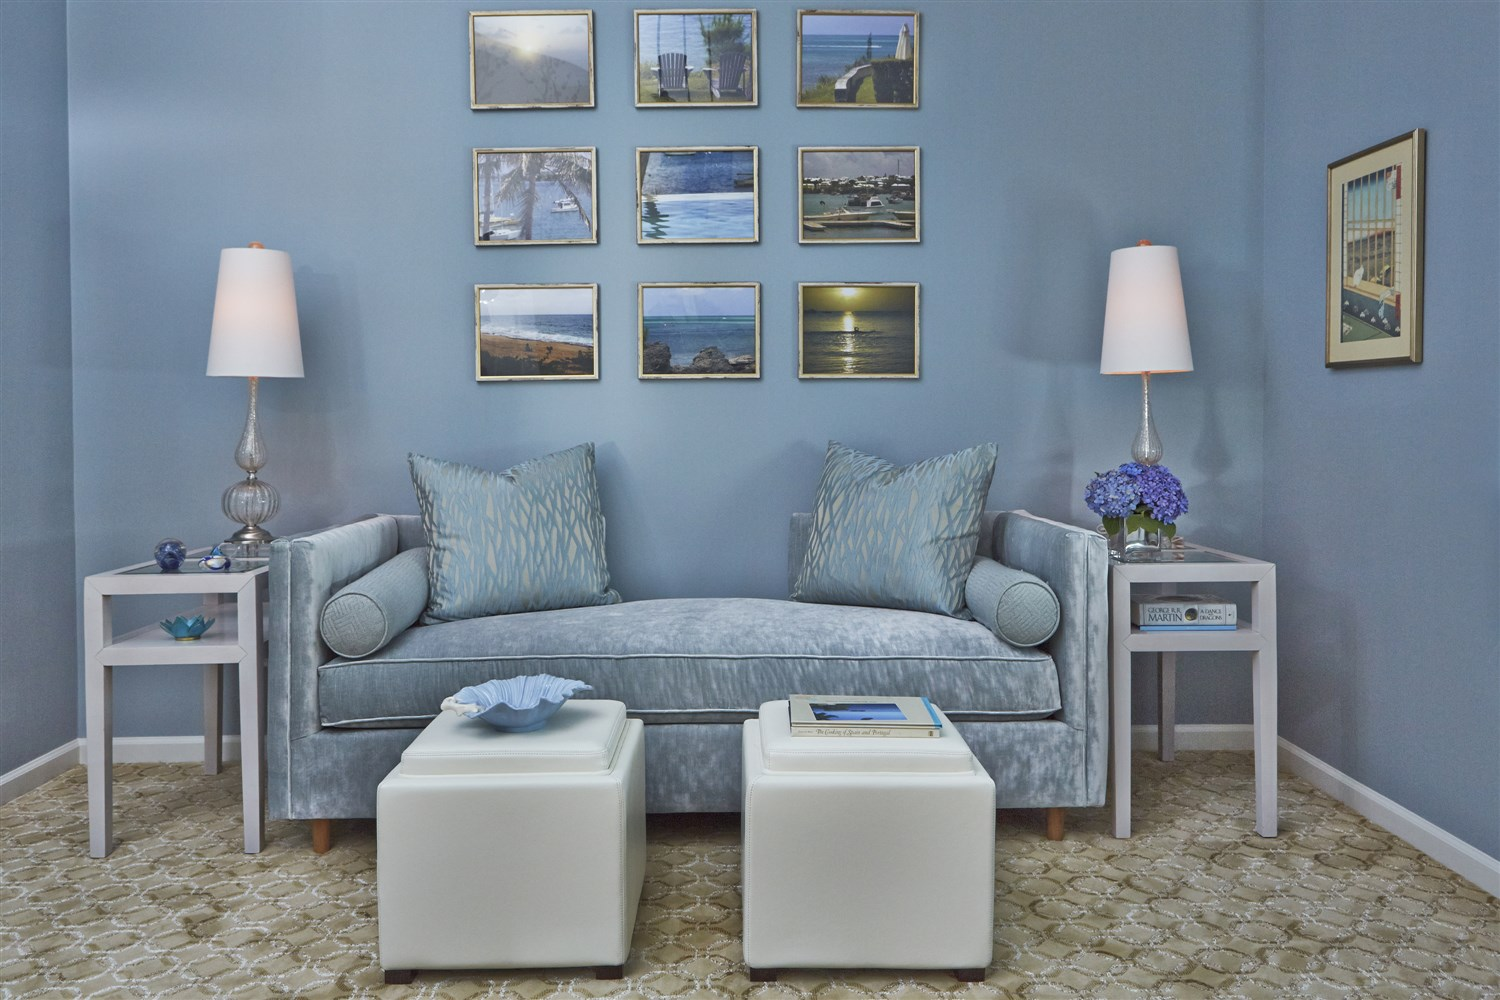 Living room with framed paintings on the wall and sofa set